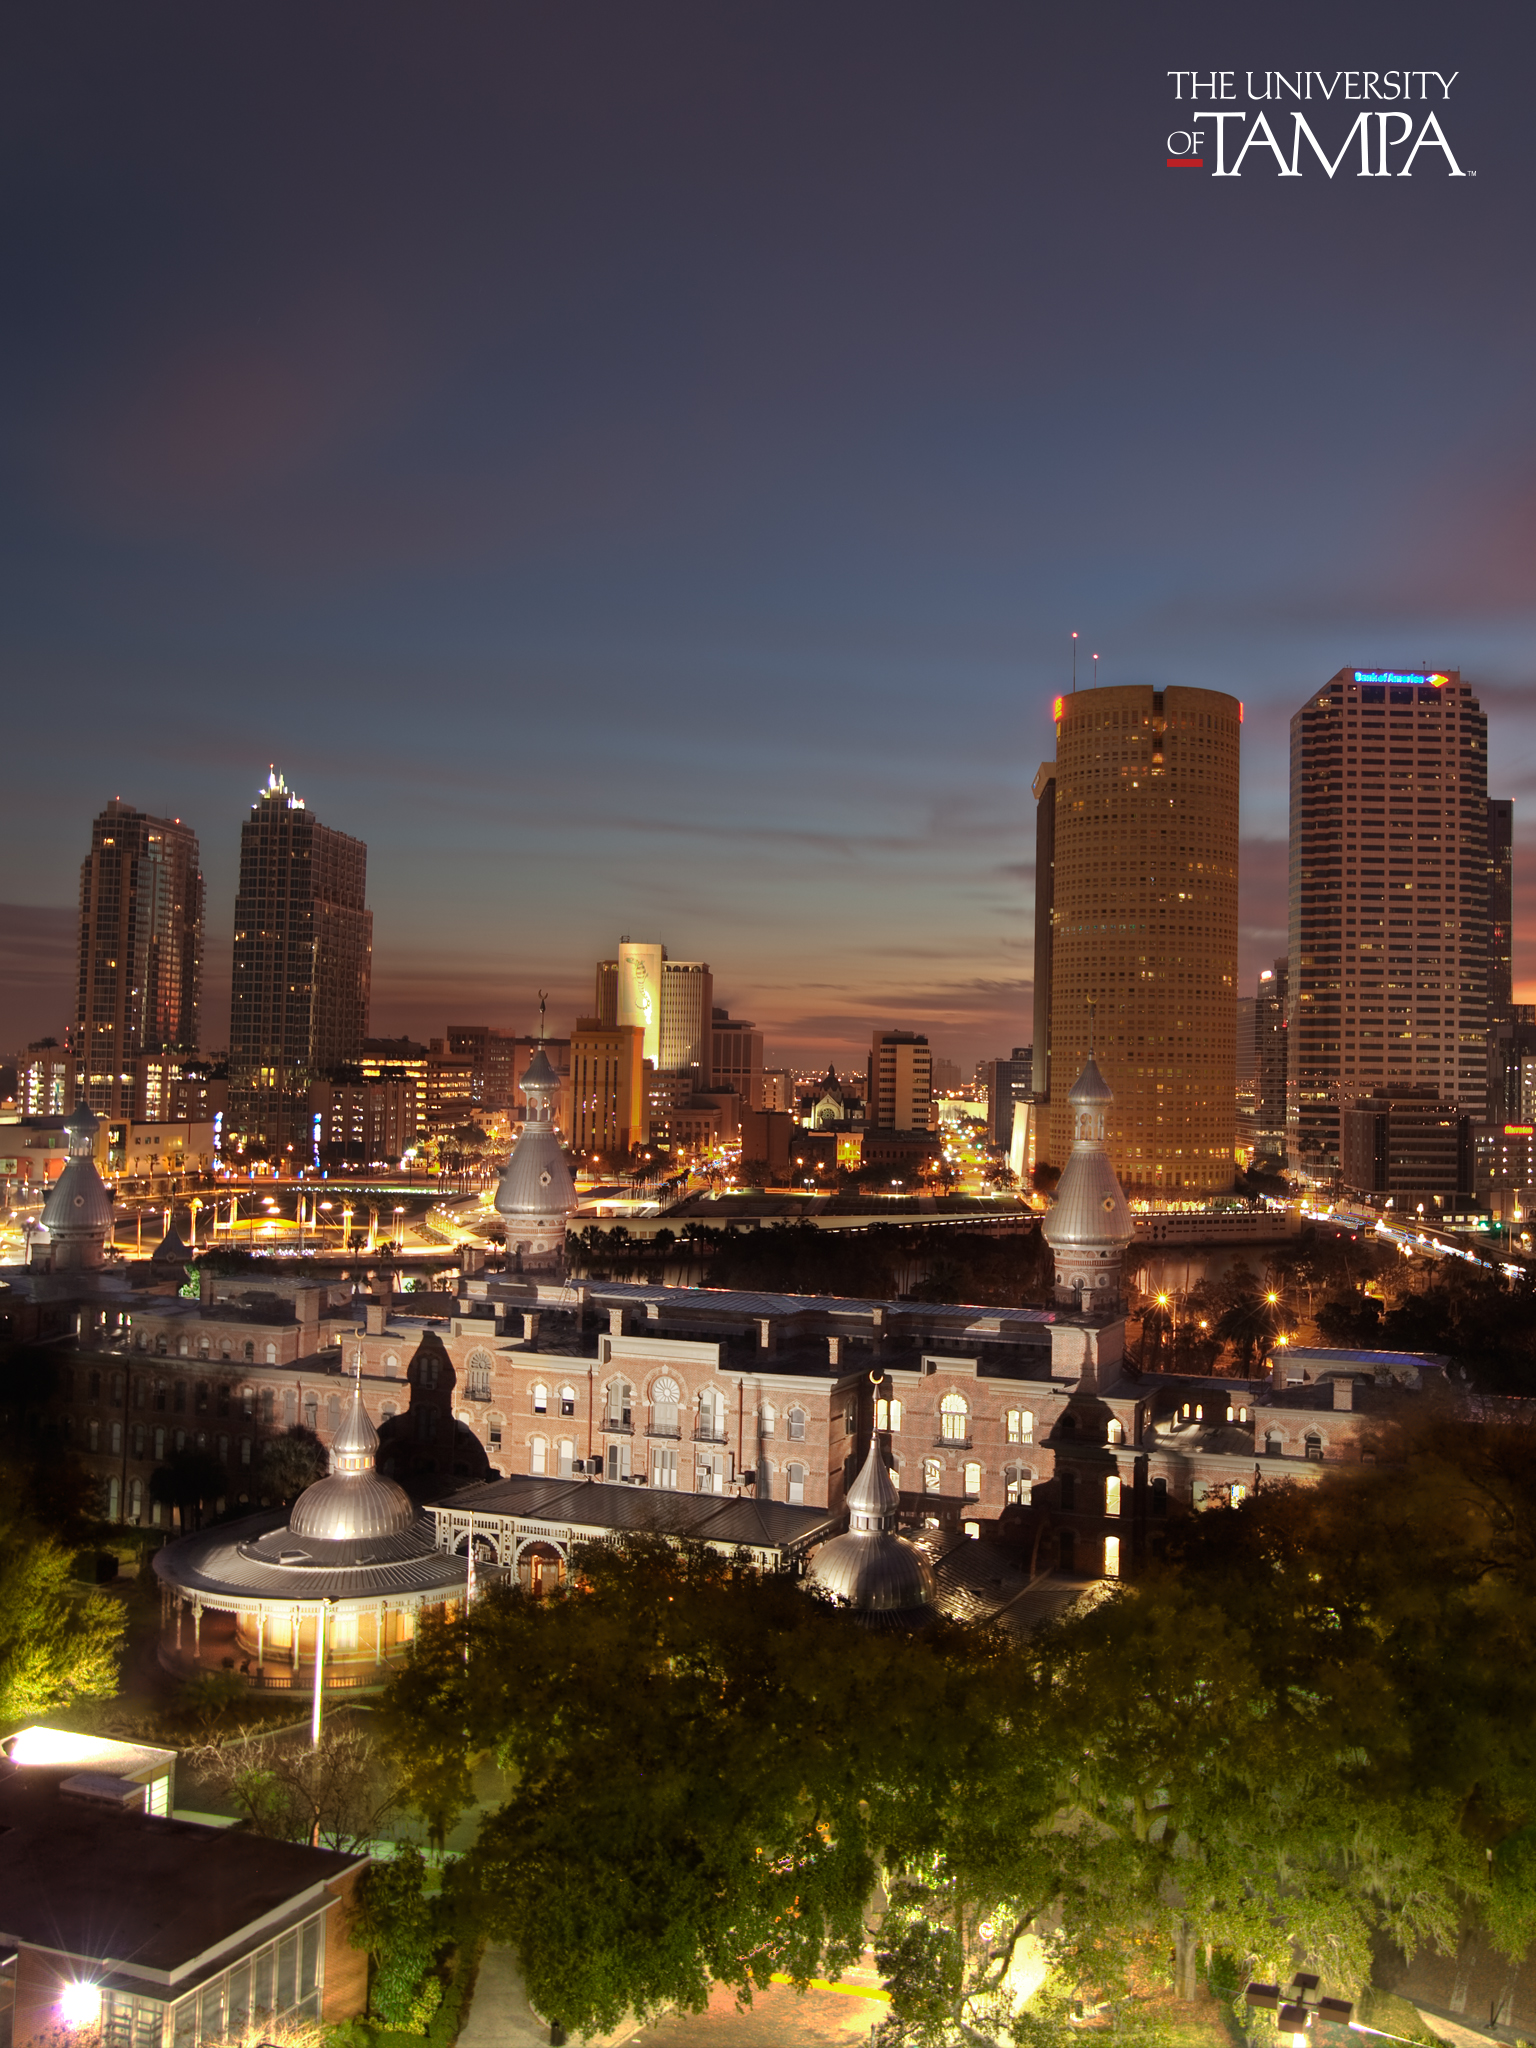 The university of tampa public information wallpaper downloads tablet wallpapers ipad voltagebd Choice Image